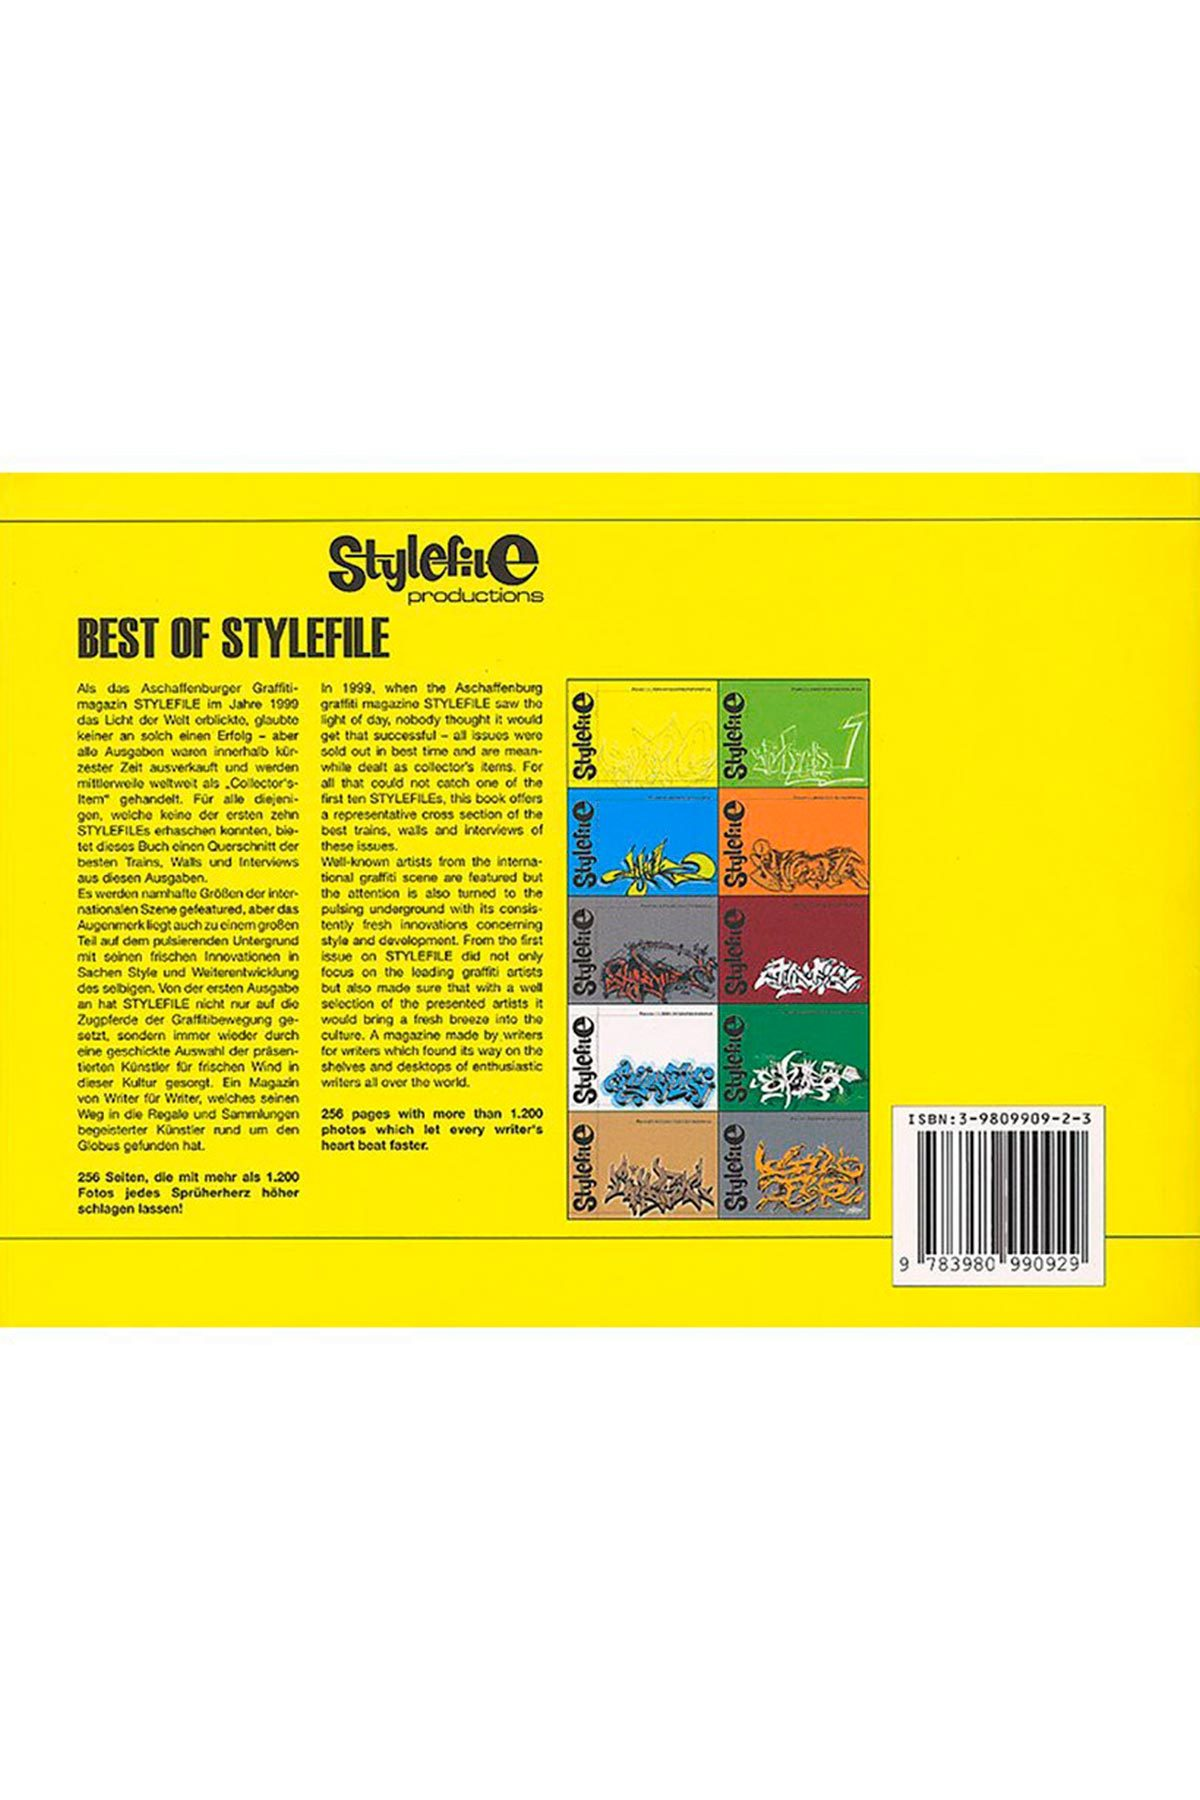 STYLEFILE - Best Of Issue 01 - 10